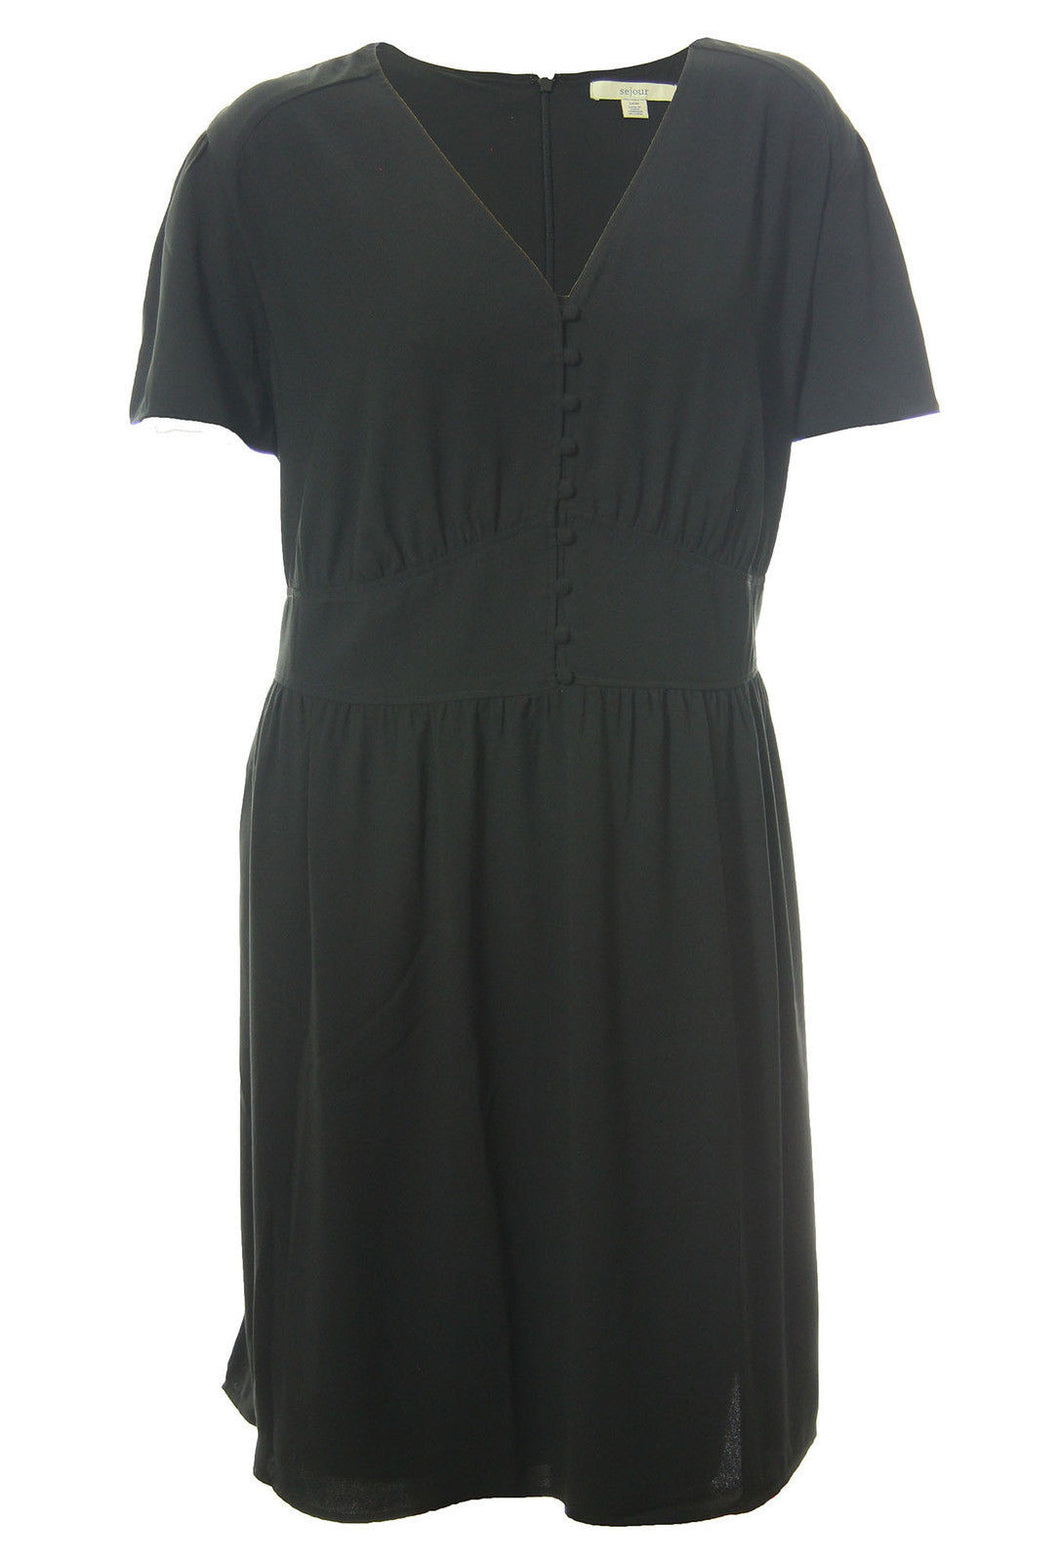 Sejour Black Flutter Sleeve Button Front Dress